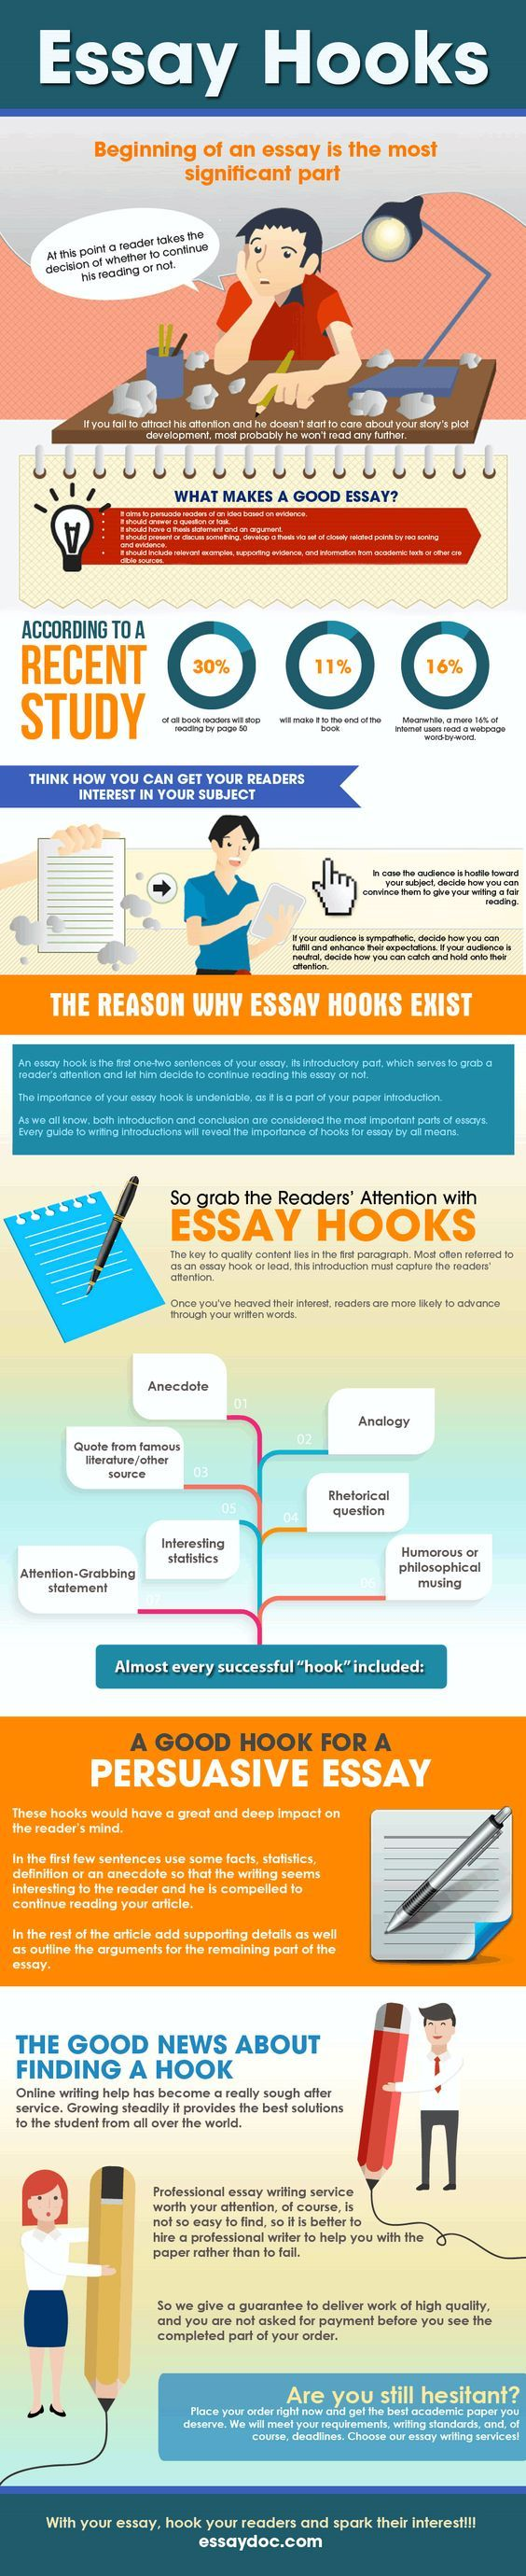 best ideas about essay structure essay writing 17 best ideas about essay structure essay writing essay writing tips and essay tips